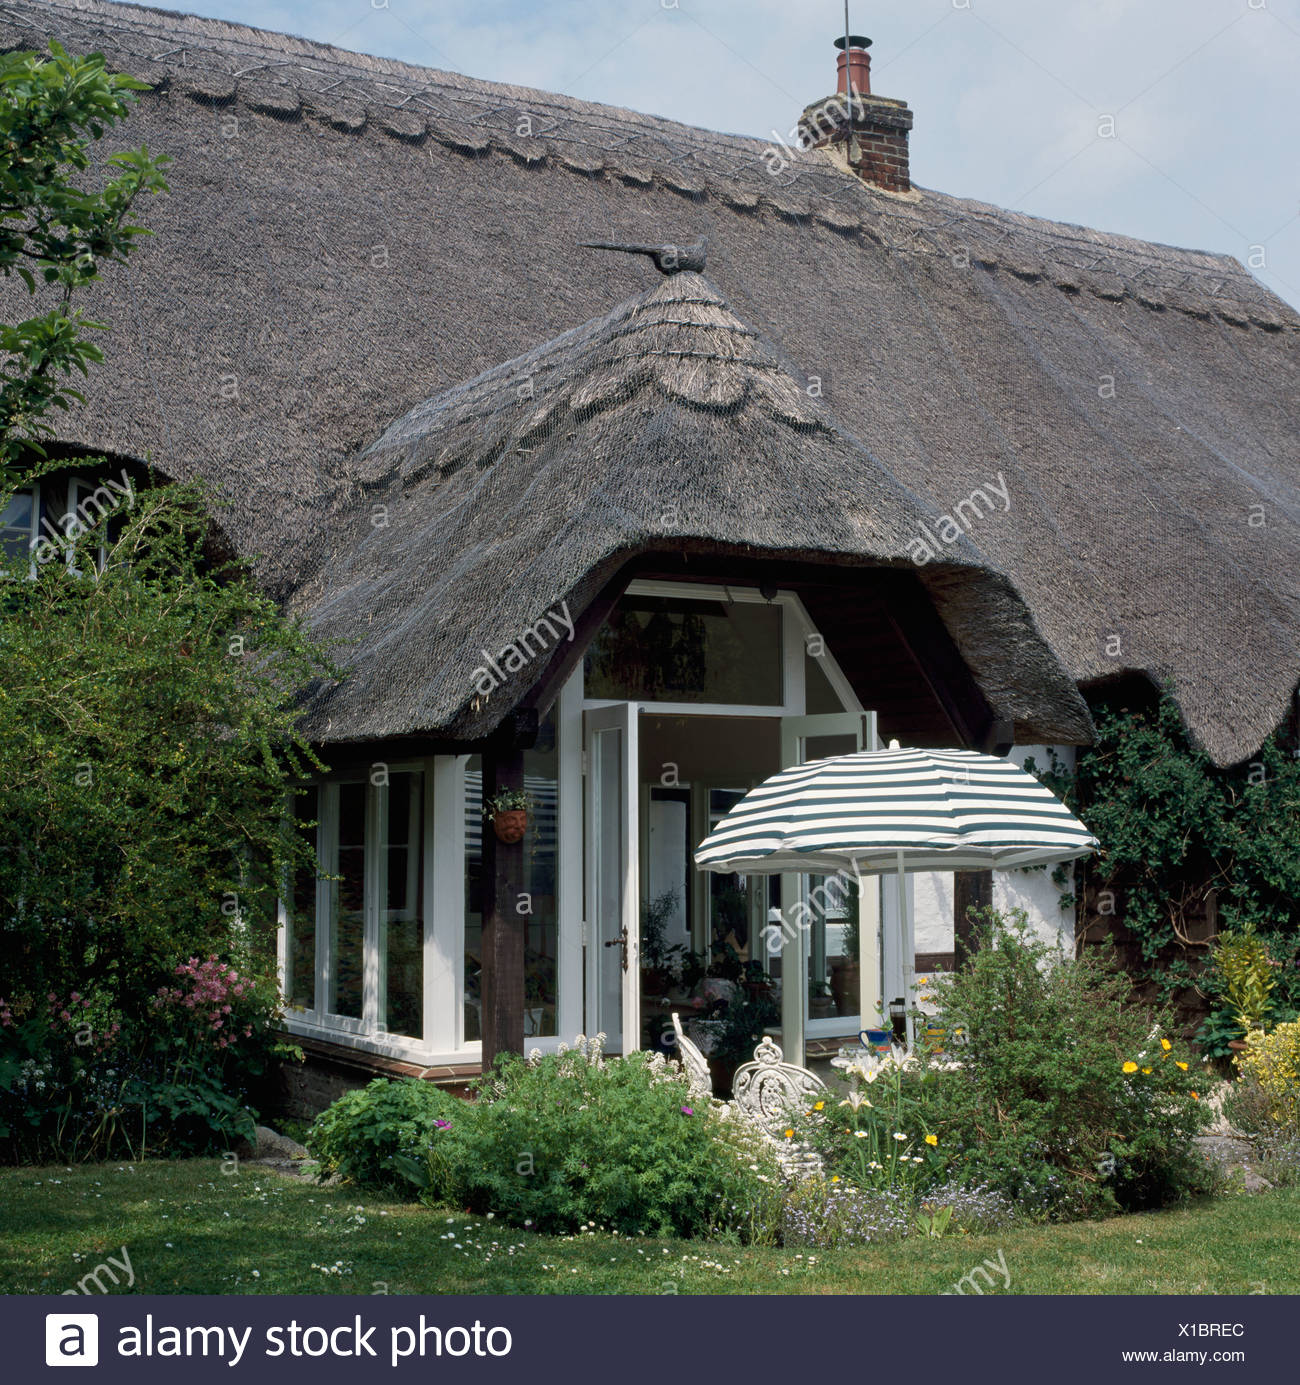 White Thatched Cottage With Thatched Conservatory Extension And Patio With  Striped Umbrella